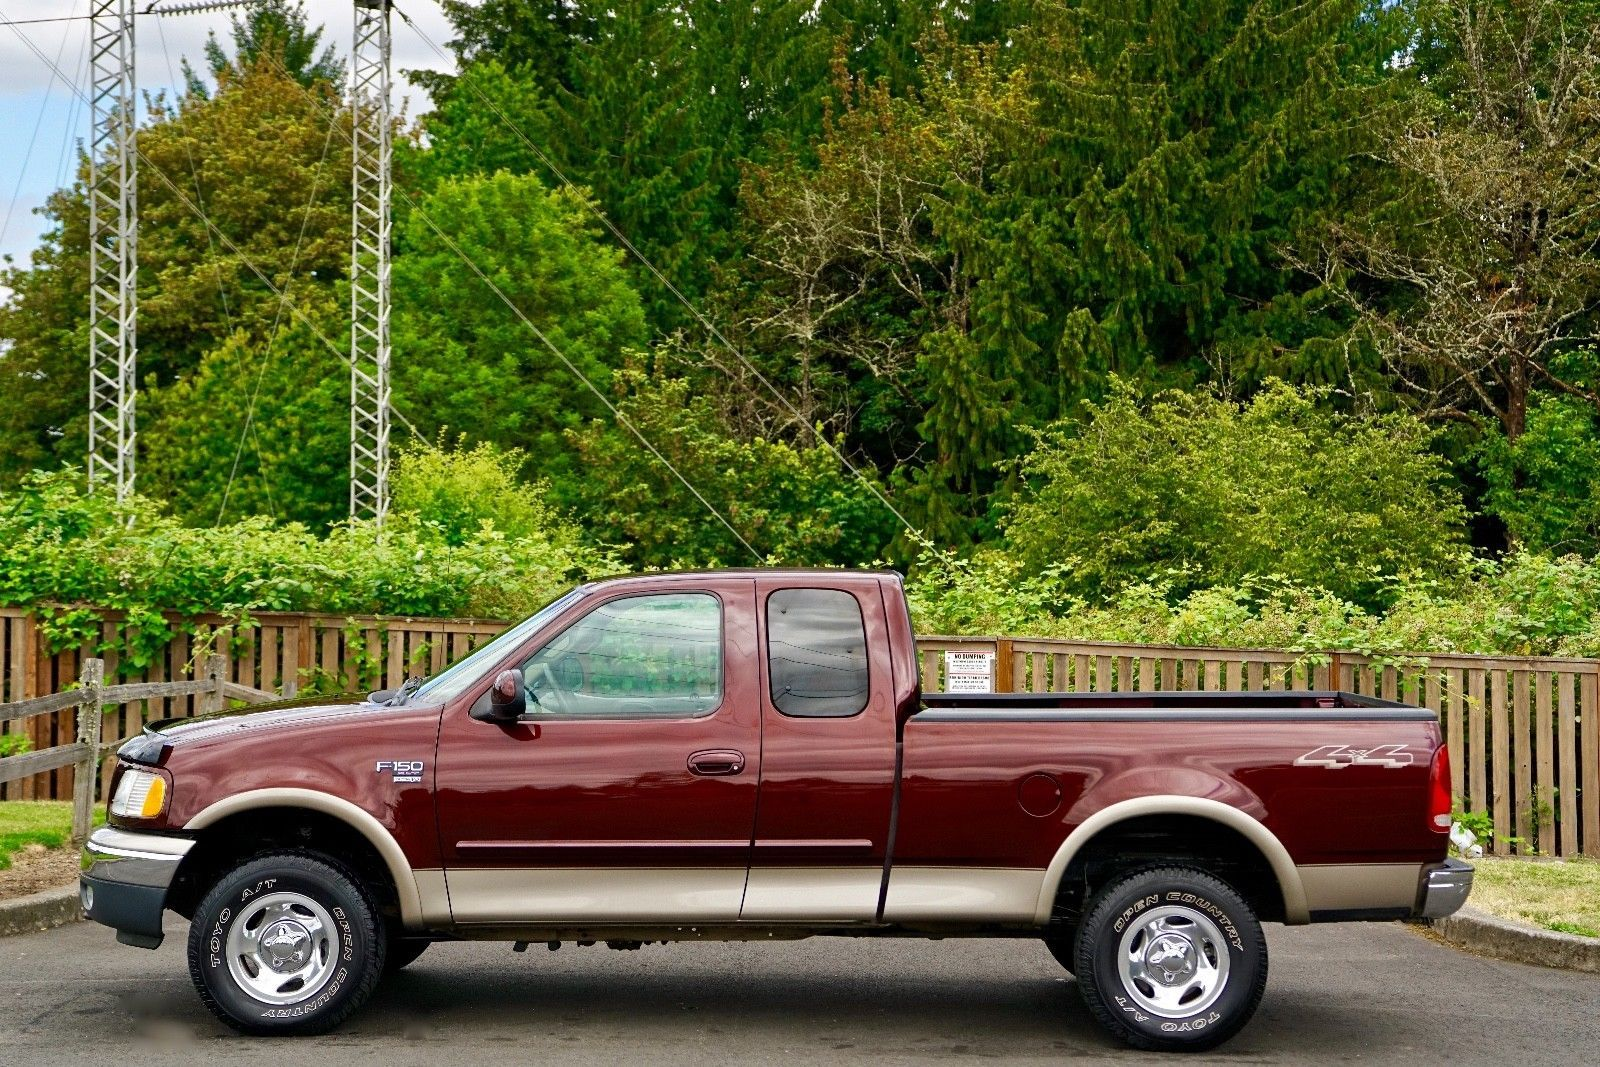 2001 Ford F 150 Xlt 2001 Ford F 150 Xlt Supercab 4 Dr 4x4 Short Bed Pickup Truck With 27 000 Miles Ford Trucks Ford Ford F150 Xlt